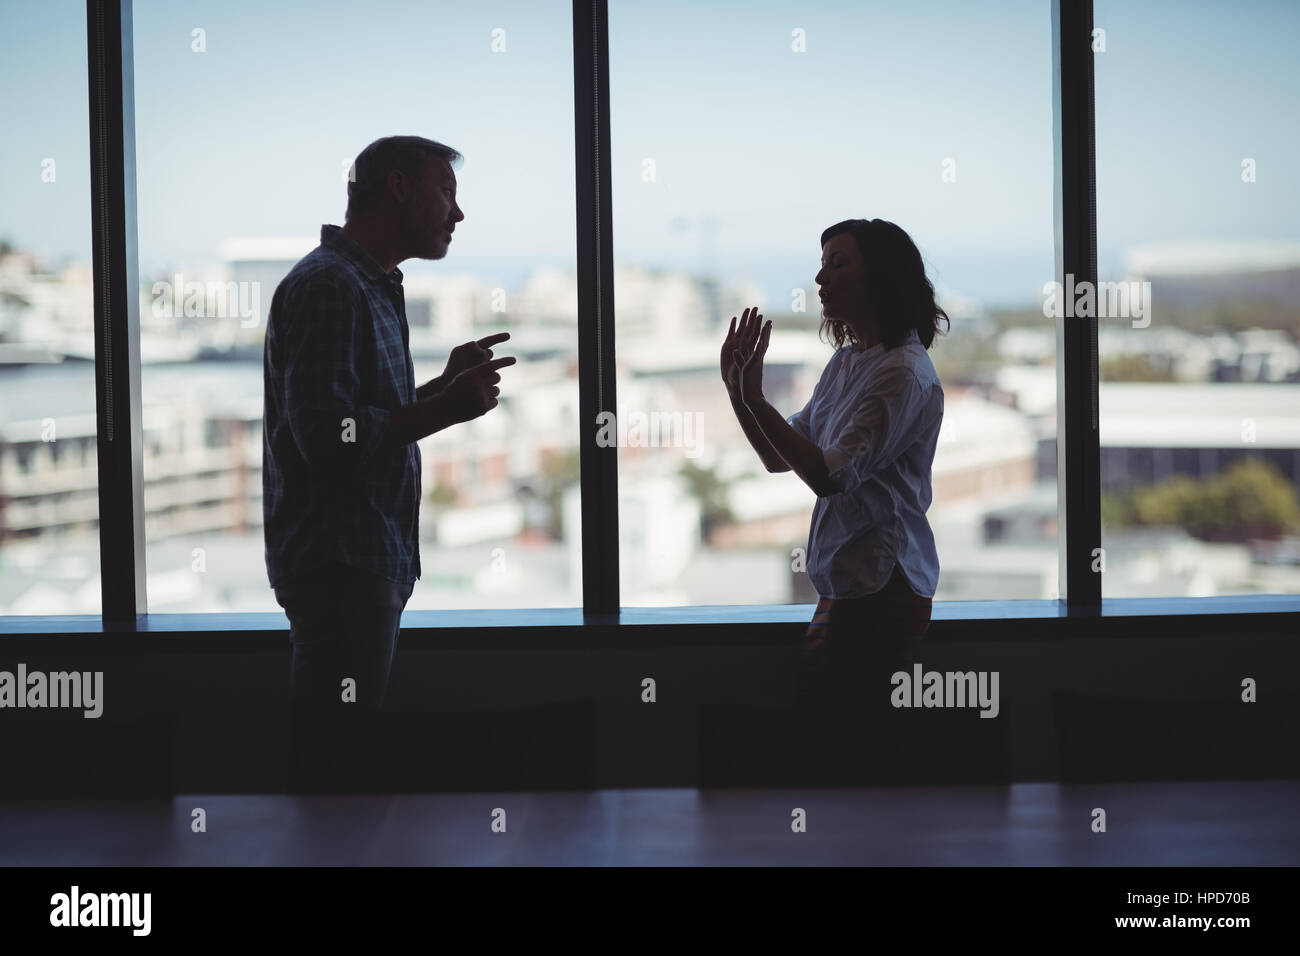 couple-arguing-near-the-window-in-office